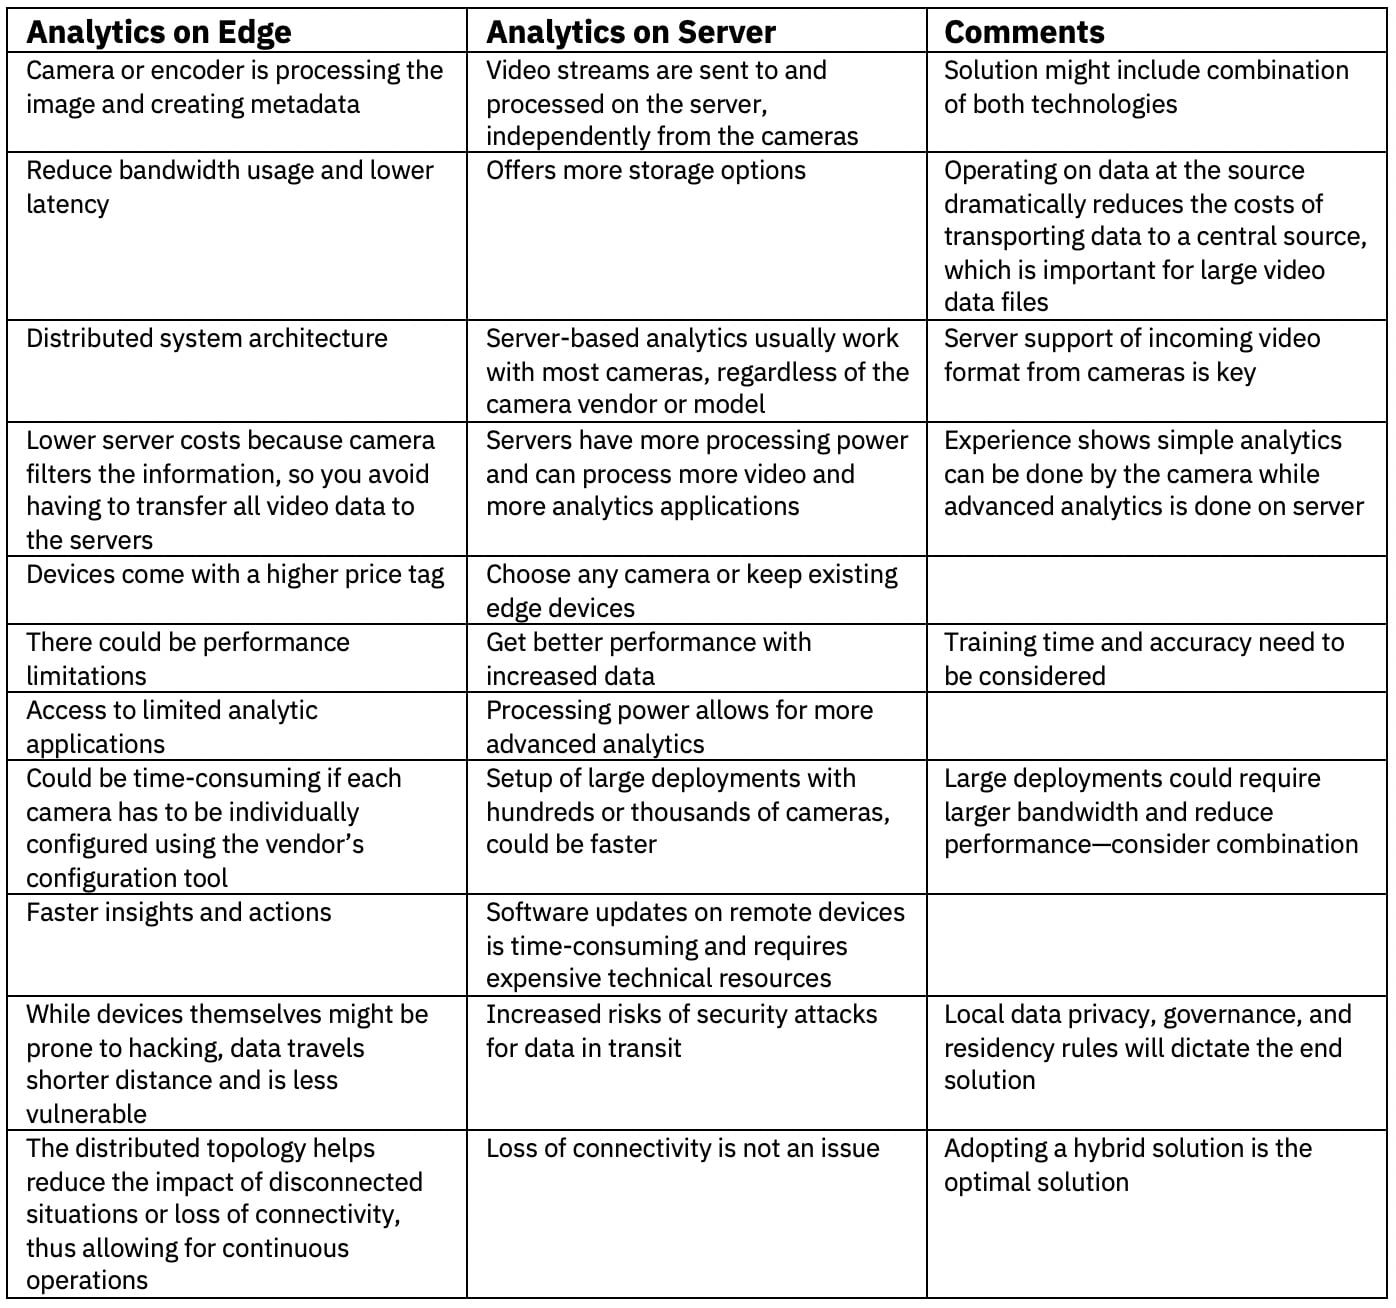 Taking the example of a remote camera capturing video, some of the pros and cons of analytics on the Edge vs. analytics on the server are captured in the table below: